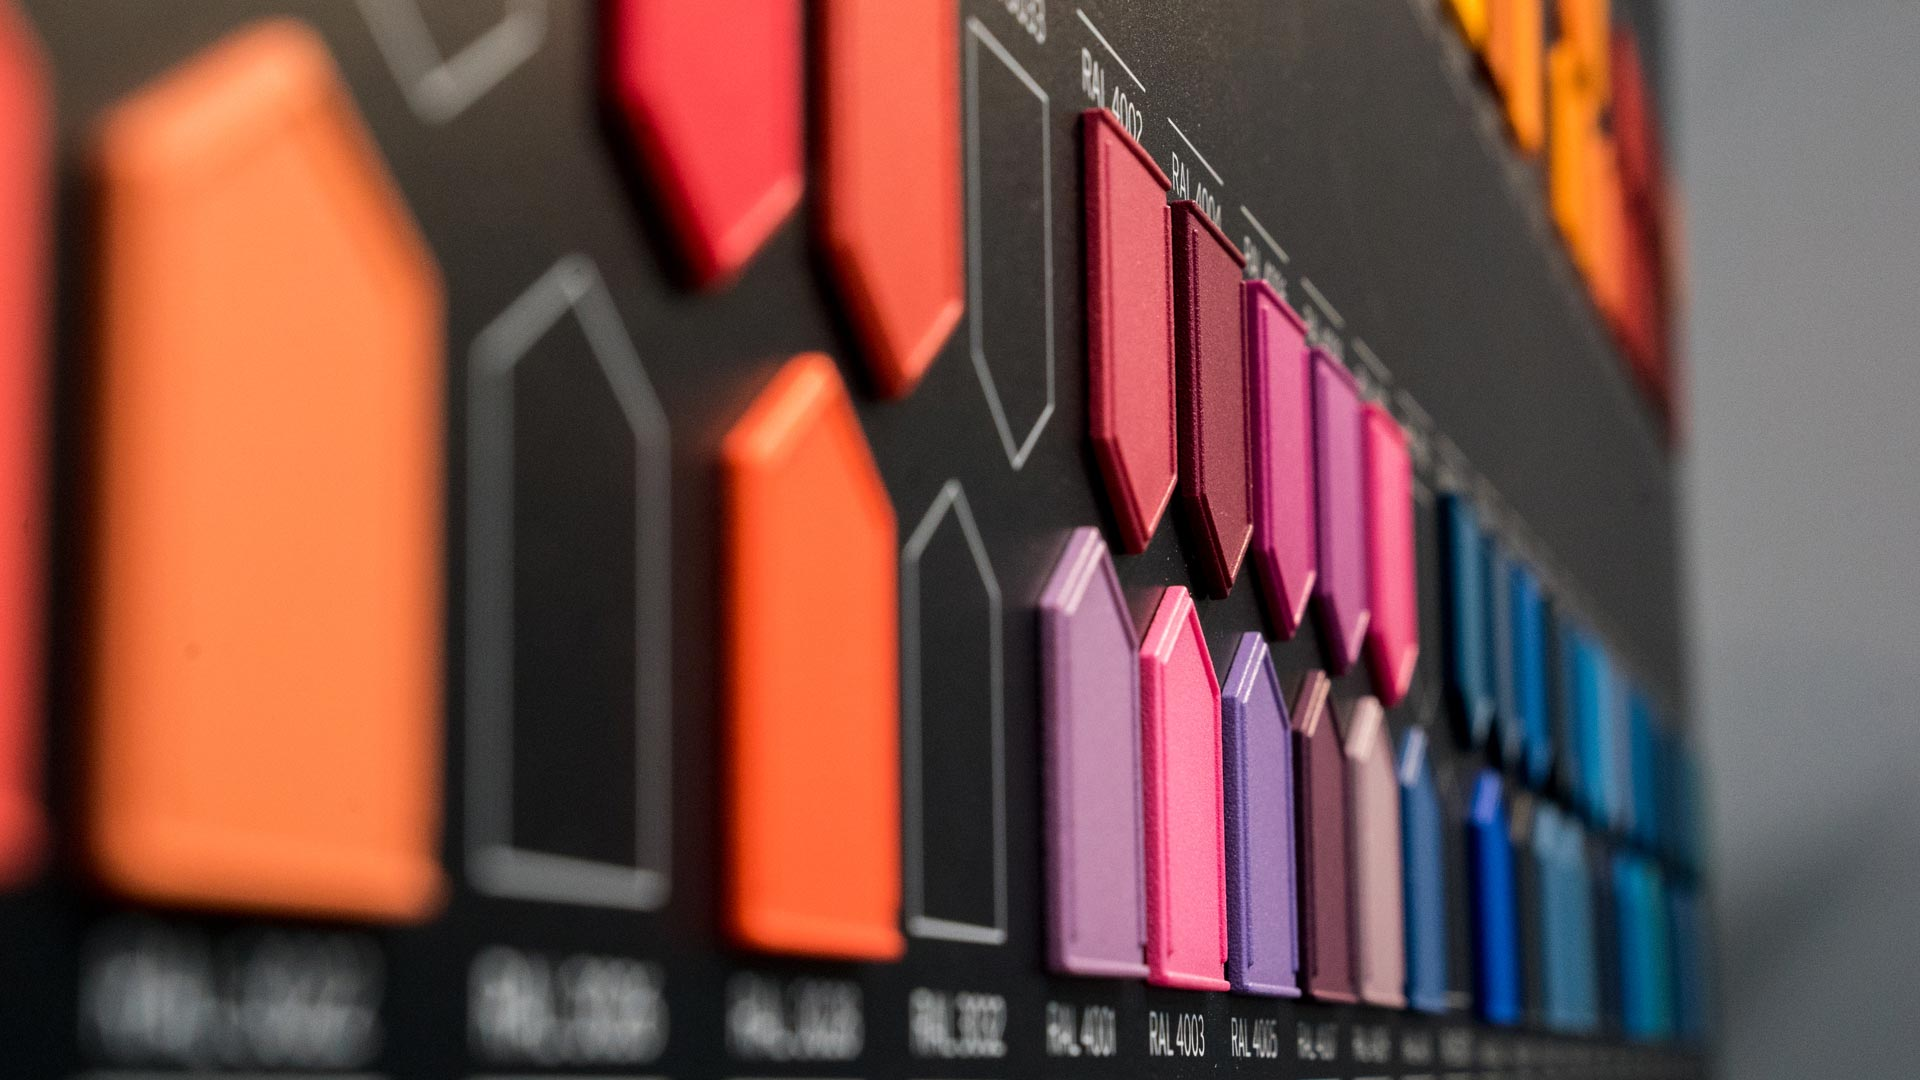 DMC expands polymer capabilities with DyeMansion